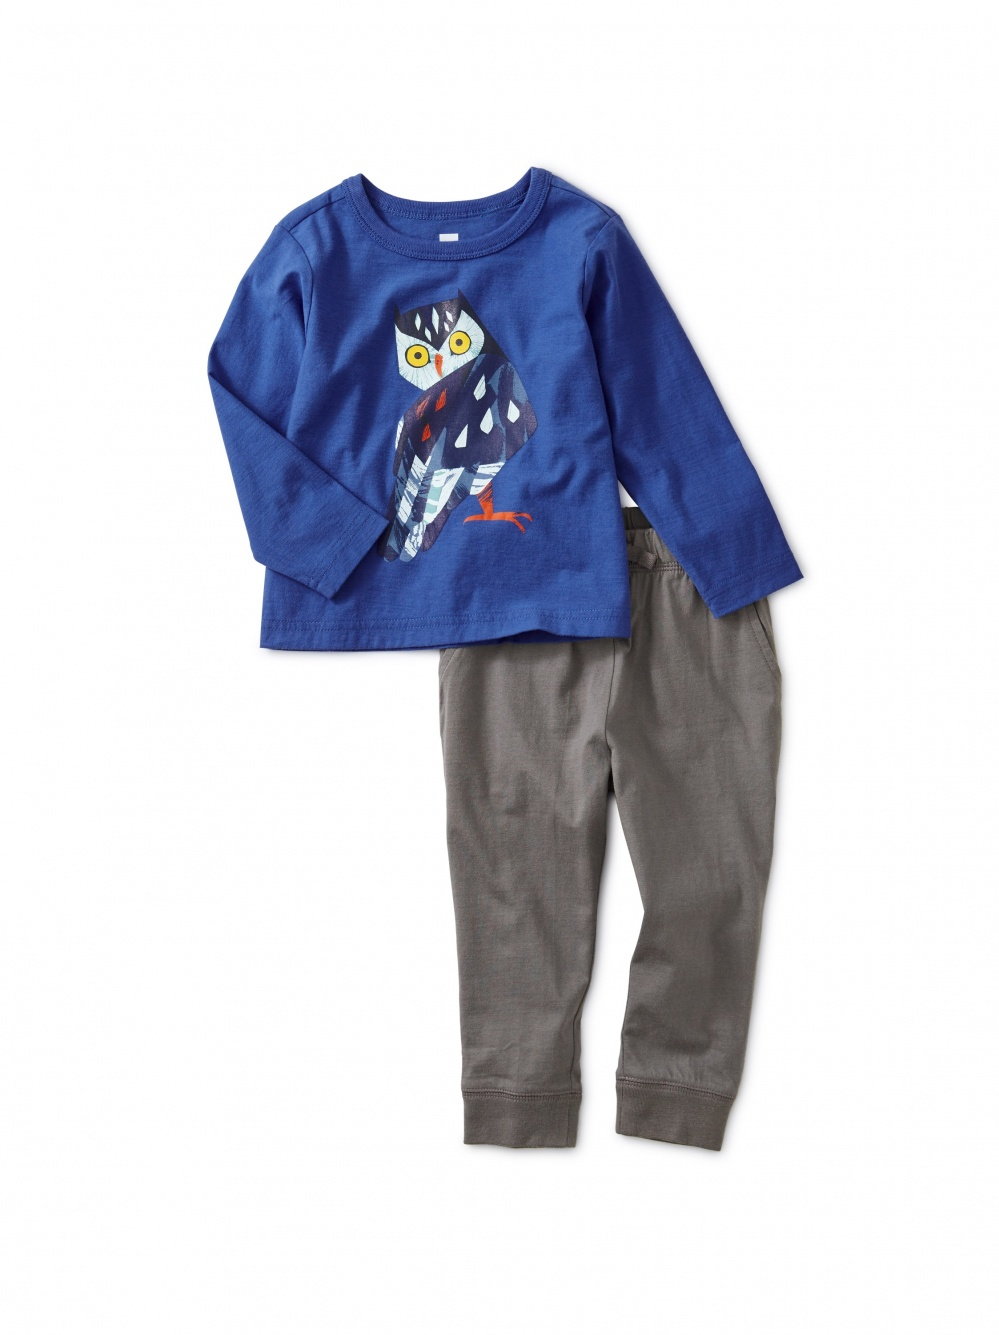 Owl Graphic Baby Jogger Set